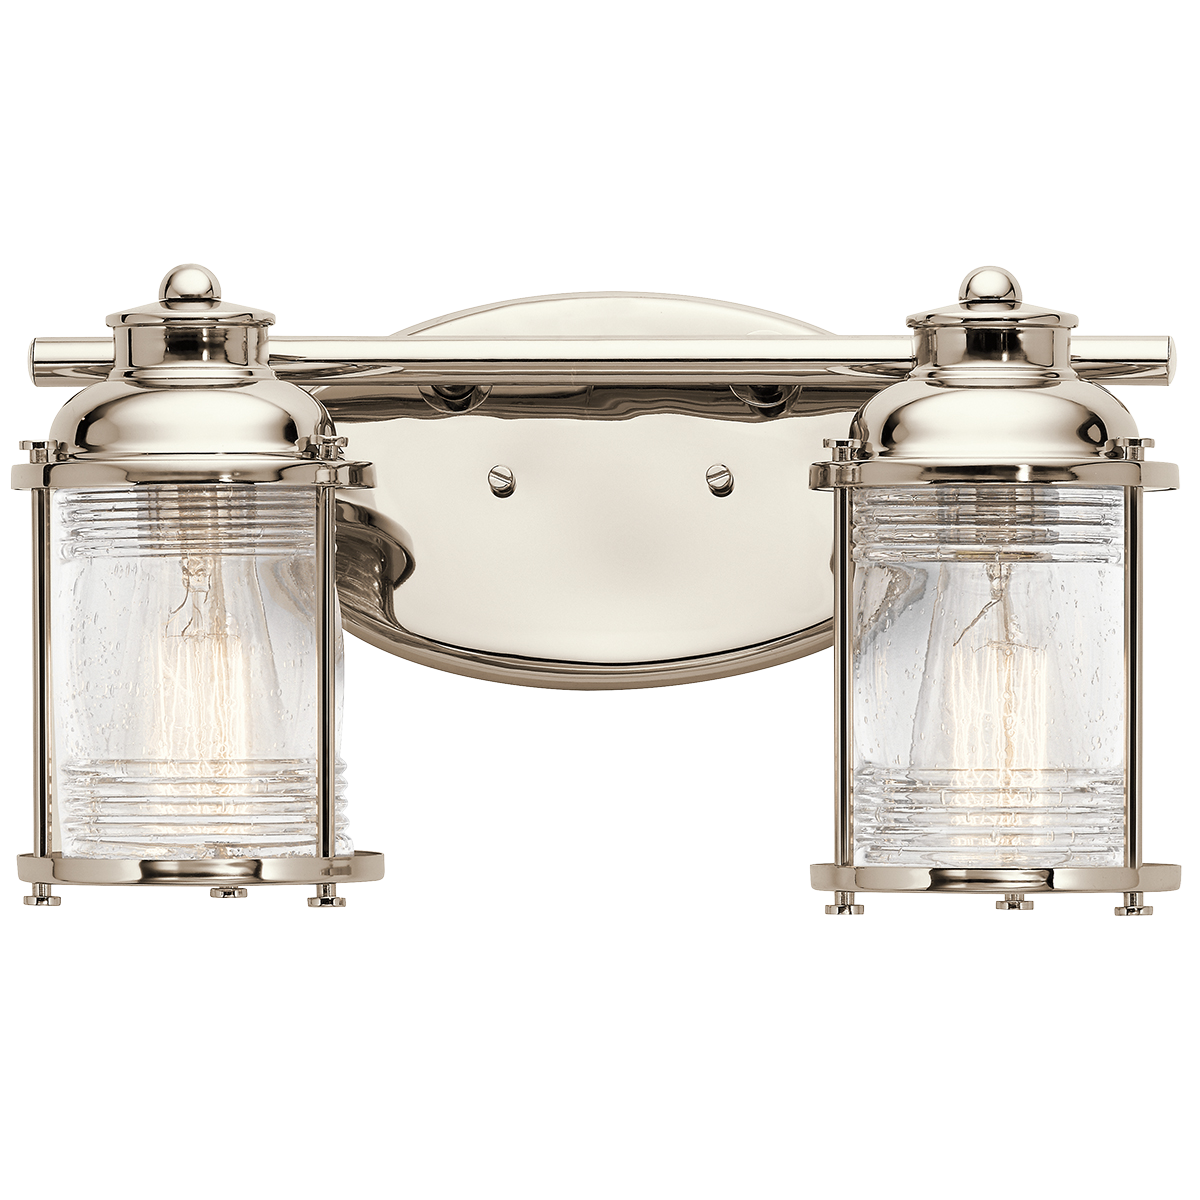 Ashland Bay Light Bath Light In Polished Nickel PN Bright - Polished nickel bathroom light fixtures